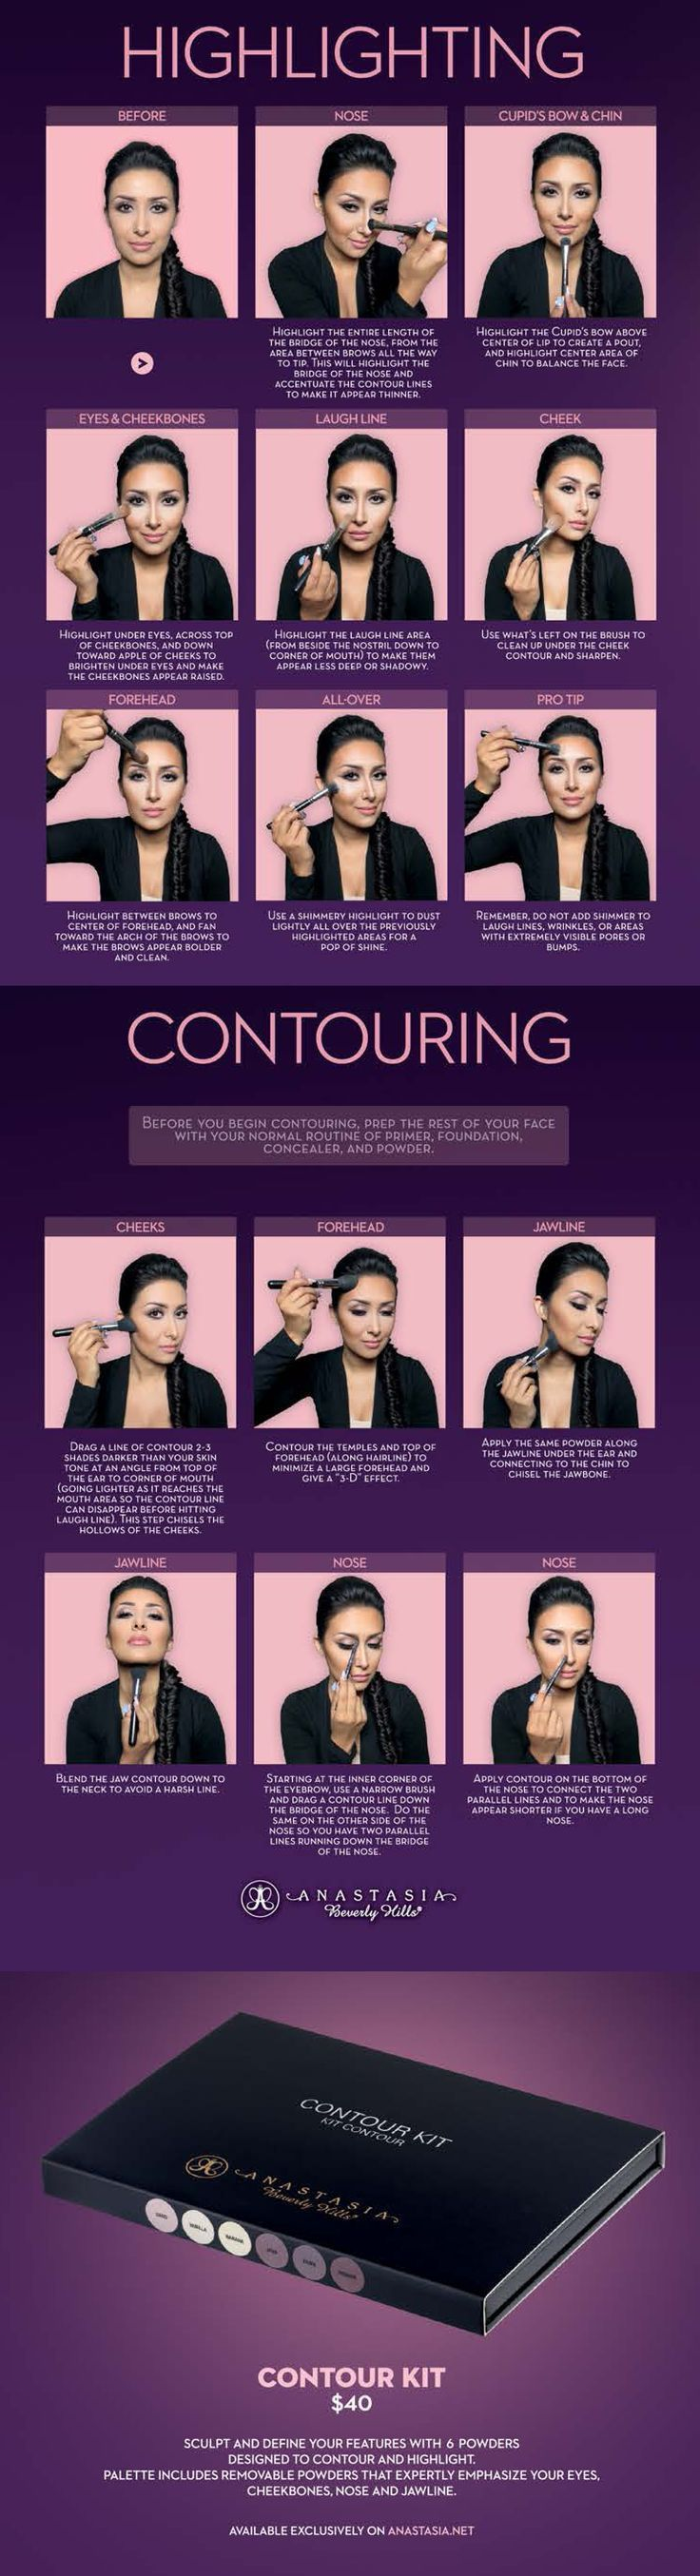 Contour Kit Contour makeup, Contouring and highlighting